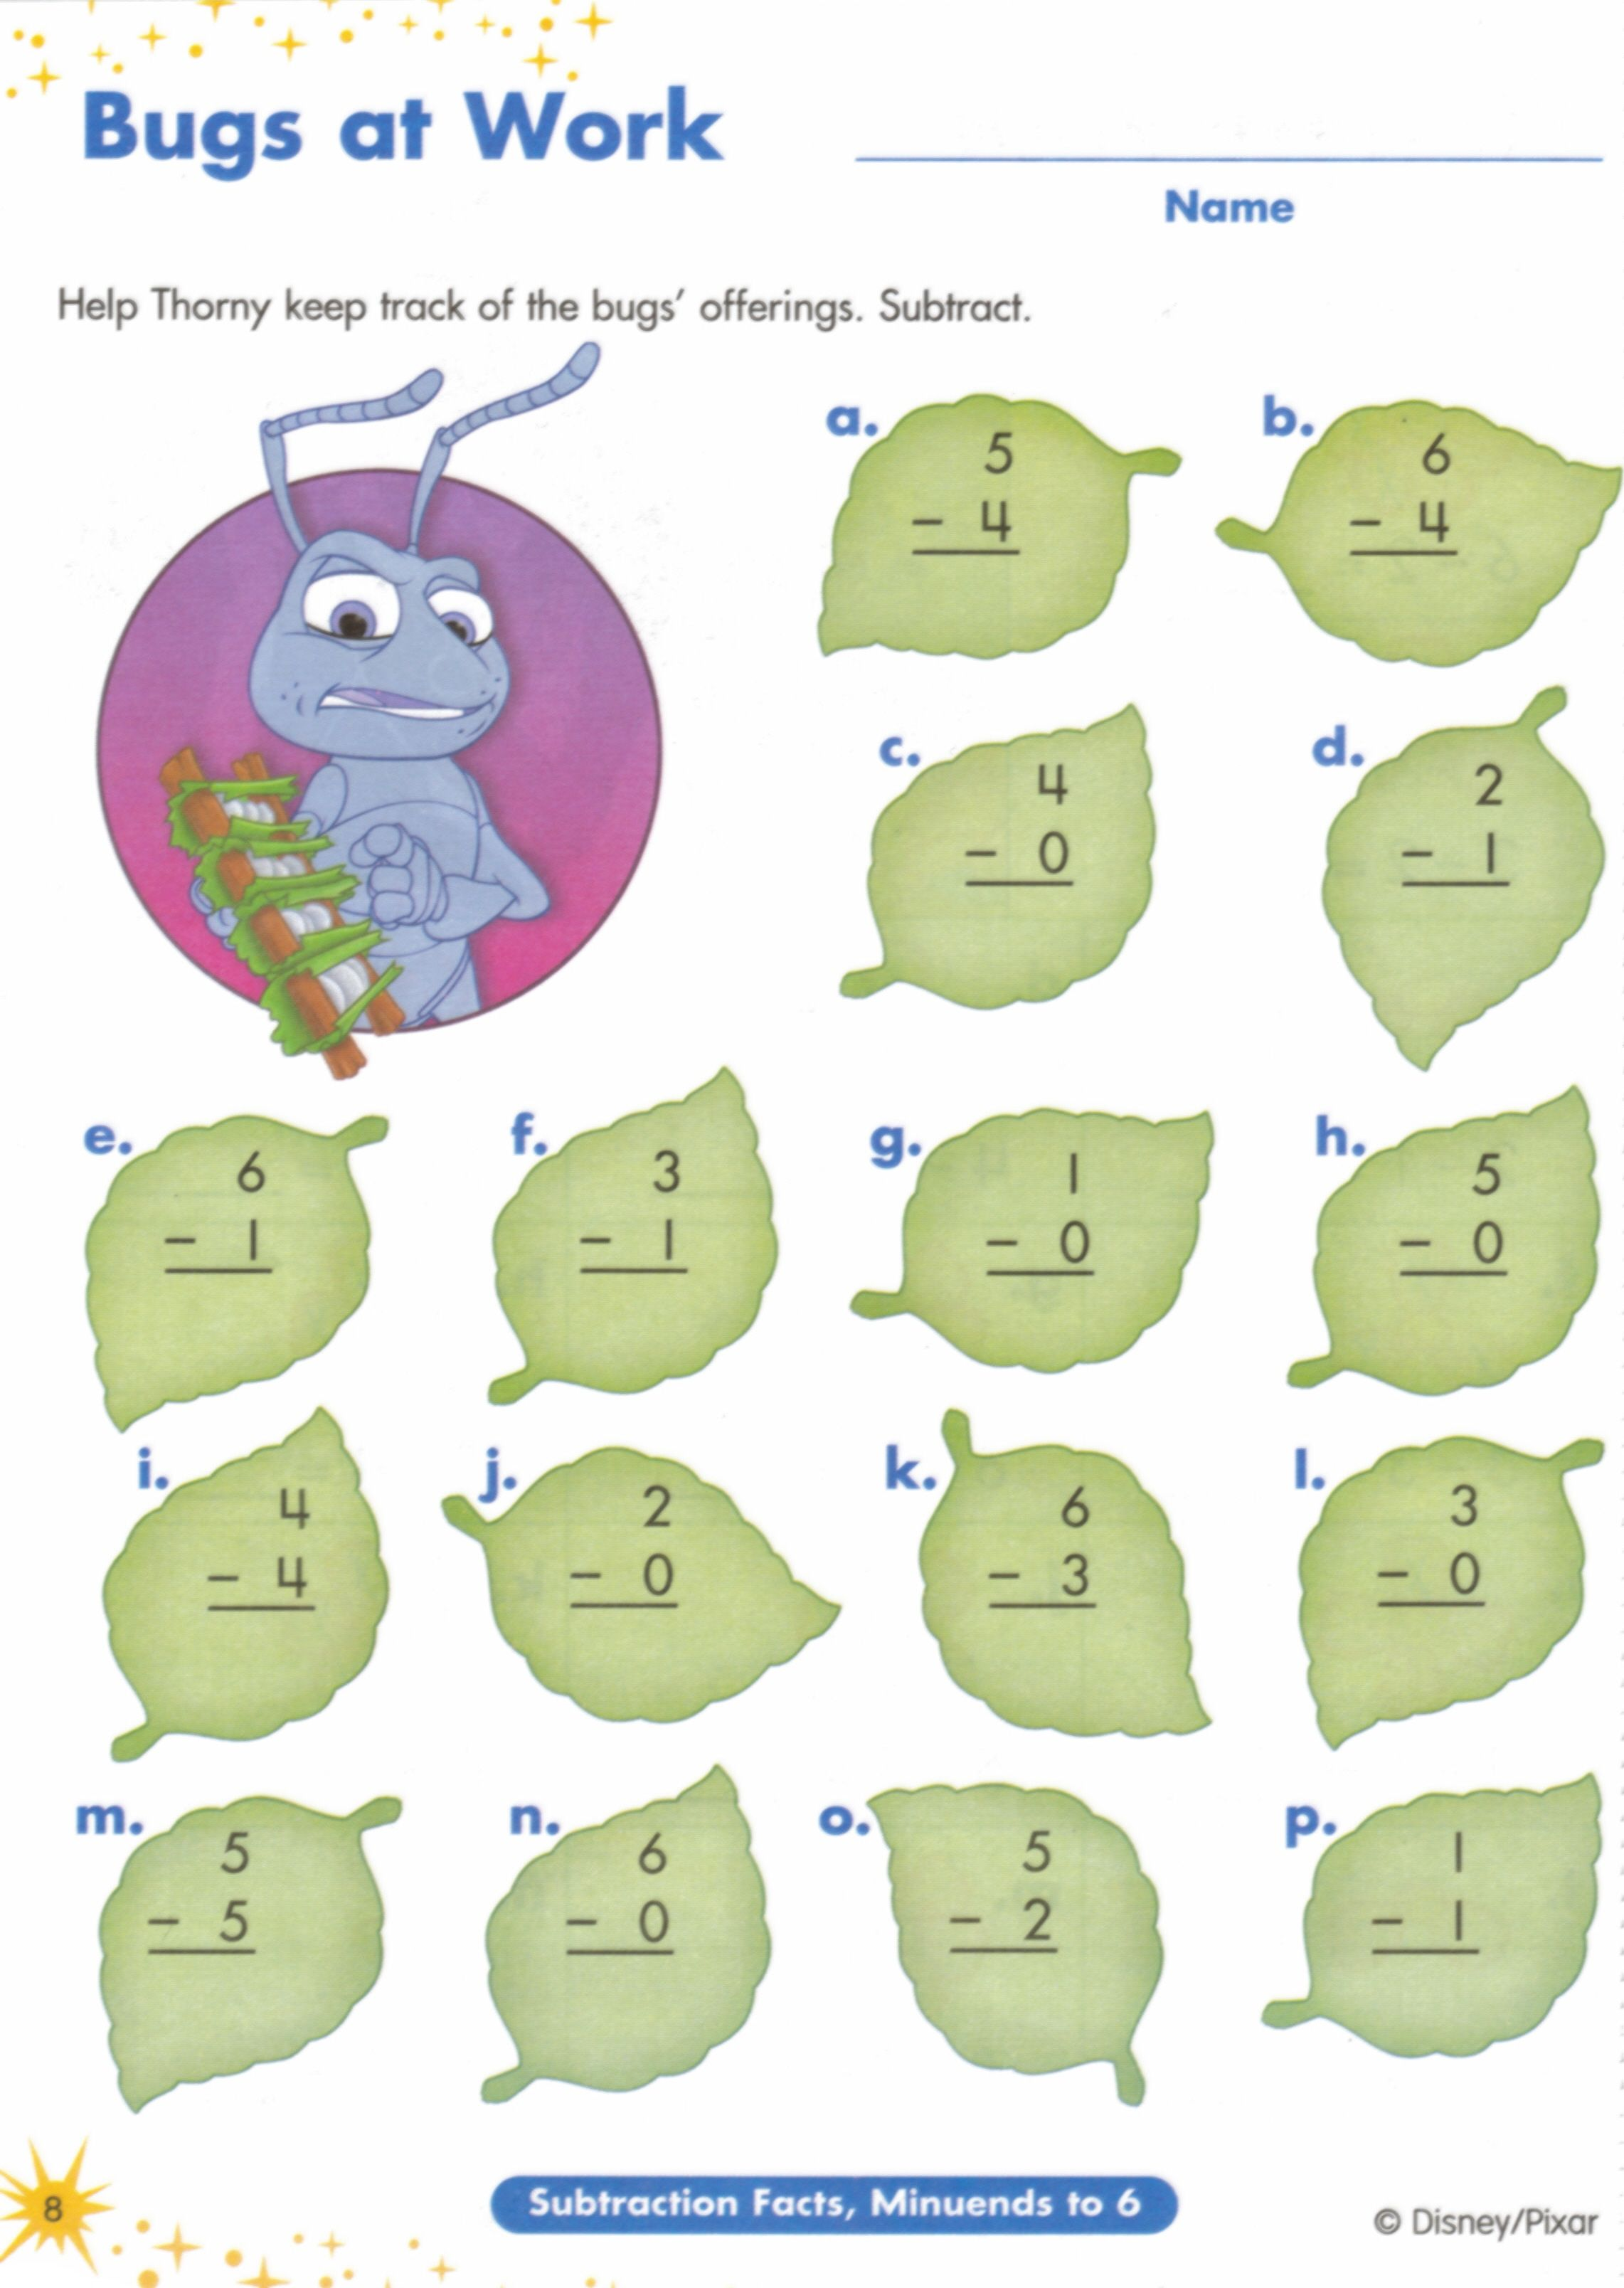 Proatmealus  Terrific  Images About Worksheets On Pinterest  Fun Facts For Kids  With Glamorous  Images About Worksheets On Pinterest  Fun Facts For Kids Earth Day Worksheets And Jungles With Nice Reflexive Pronouns Worksheets Nd Grade Also Multiplication Printable Worksheets Grade  In Addition Find Percent Of A Number Worksheet And Simple And Complete Predicate Worksheets As Well As Th Grade Perimeter Worksheets Additionally German Worksheets For Beginners From Pinterestcom With Proatmealus  Glamorous  Images About Worksheets On Pinterest  Fun Facts For Kids  With Nice  Images About Worksheets On Pinterest  Fun Facts For Kids Earth Day Worksheets And Jungles And Terrific Reflexive Pronouns Worksheets Nd Grade Also Multiplication Printable Worksheets Grade  In Addition Find Percent Of A Number Worksheet From Pinterestcom